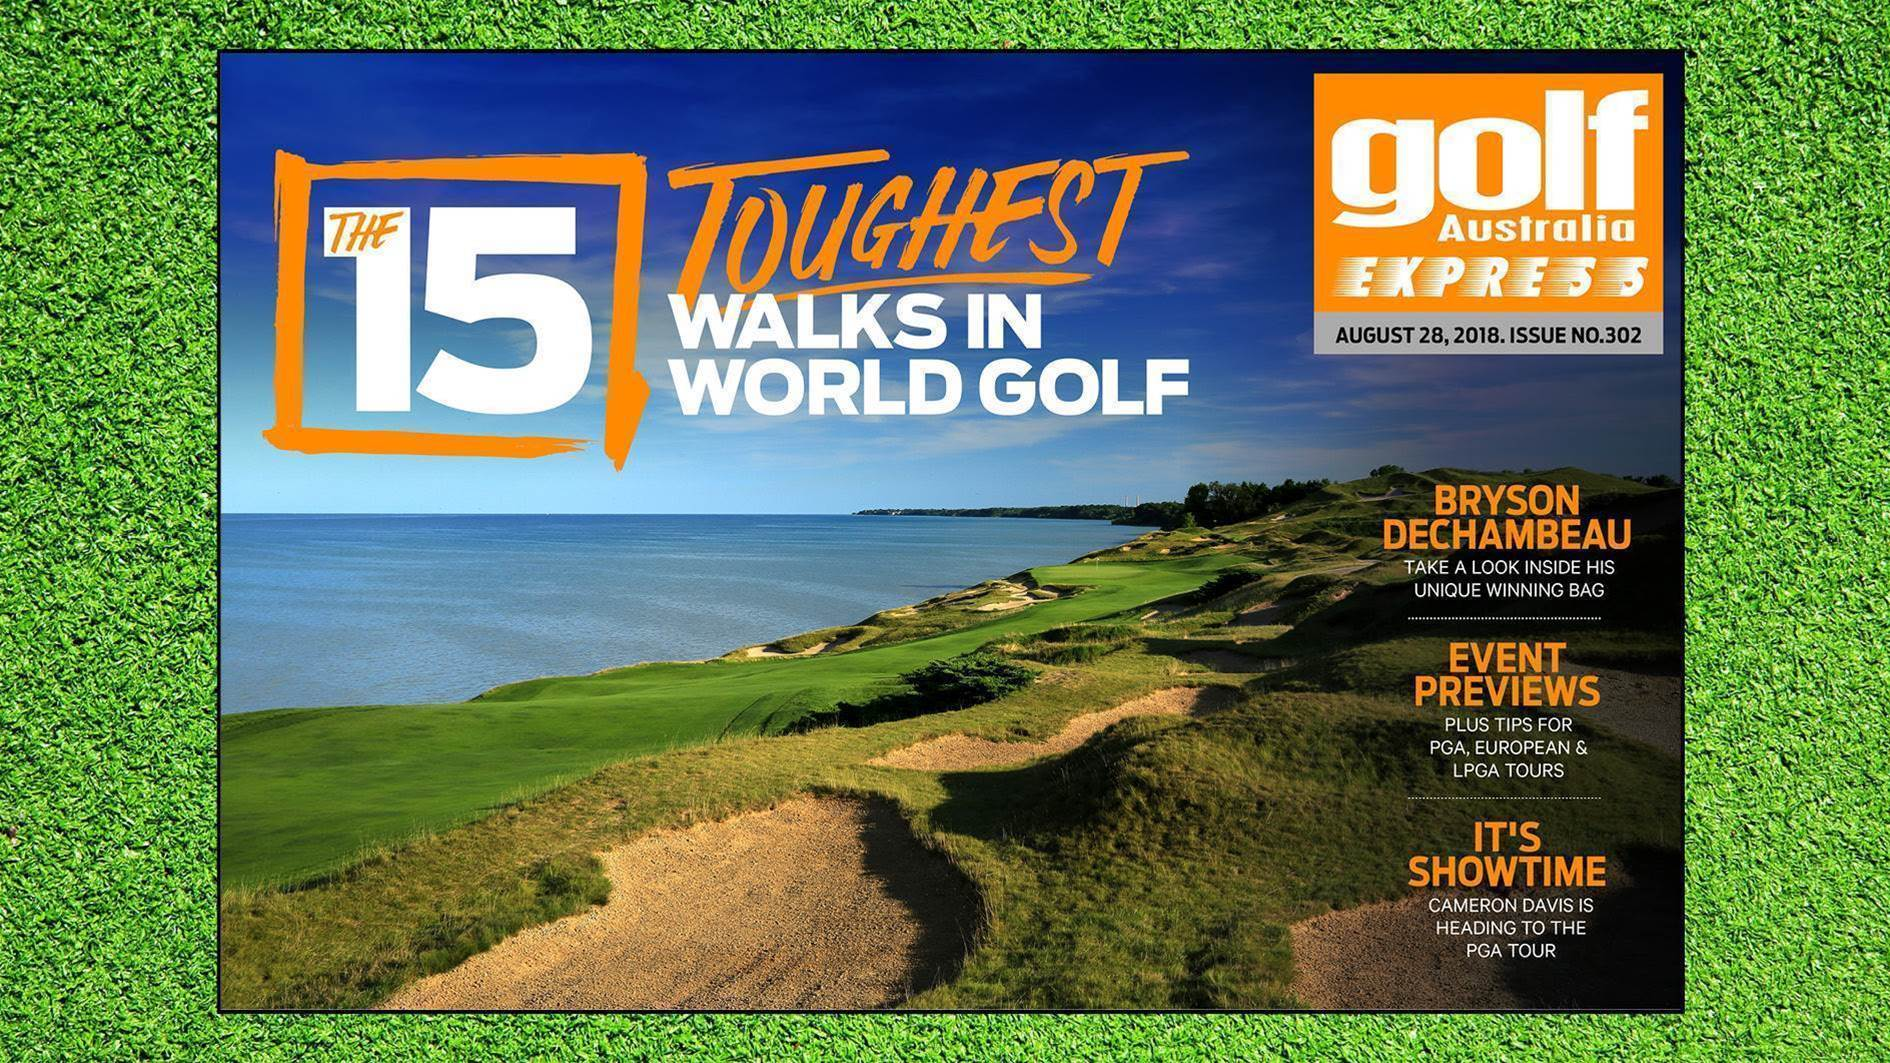 GA Express #302: The 15 toughest walks in world golf